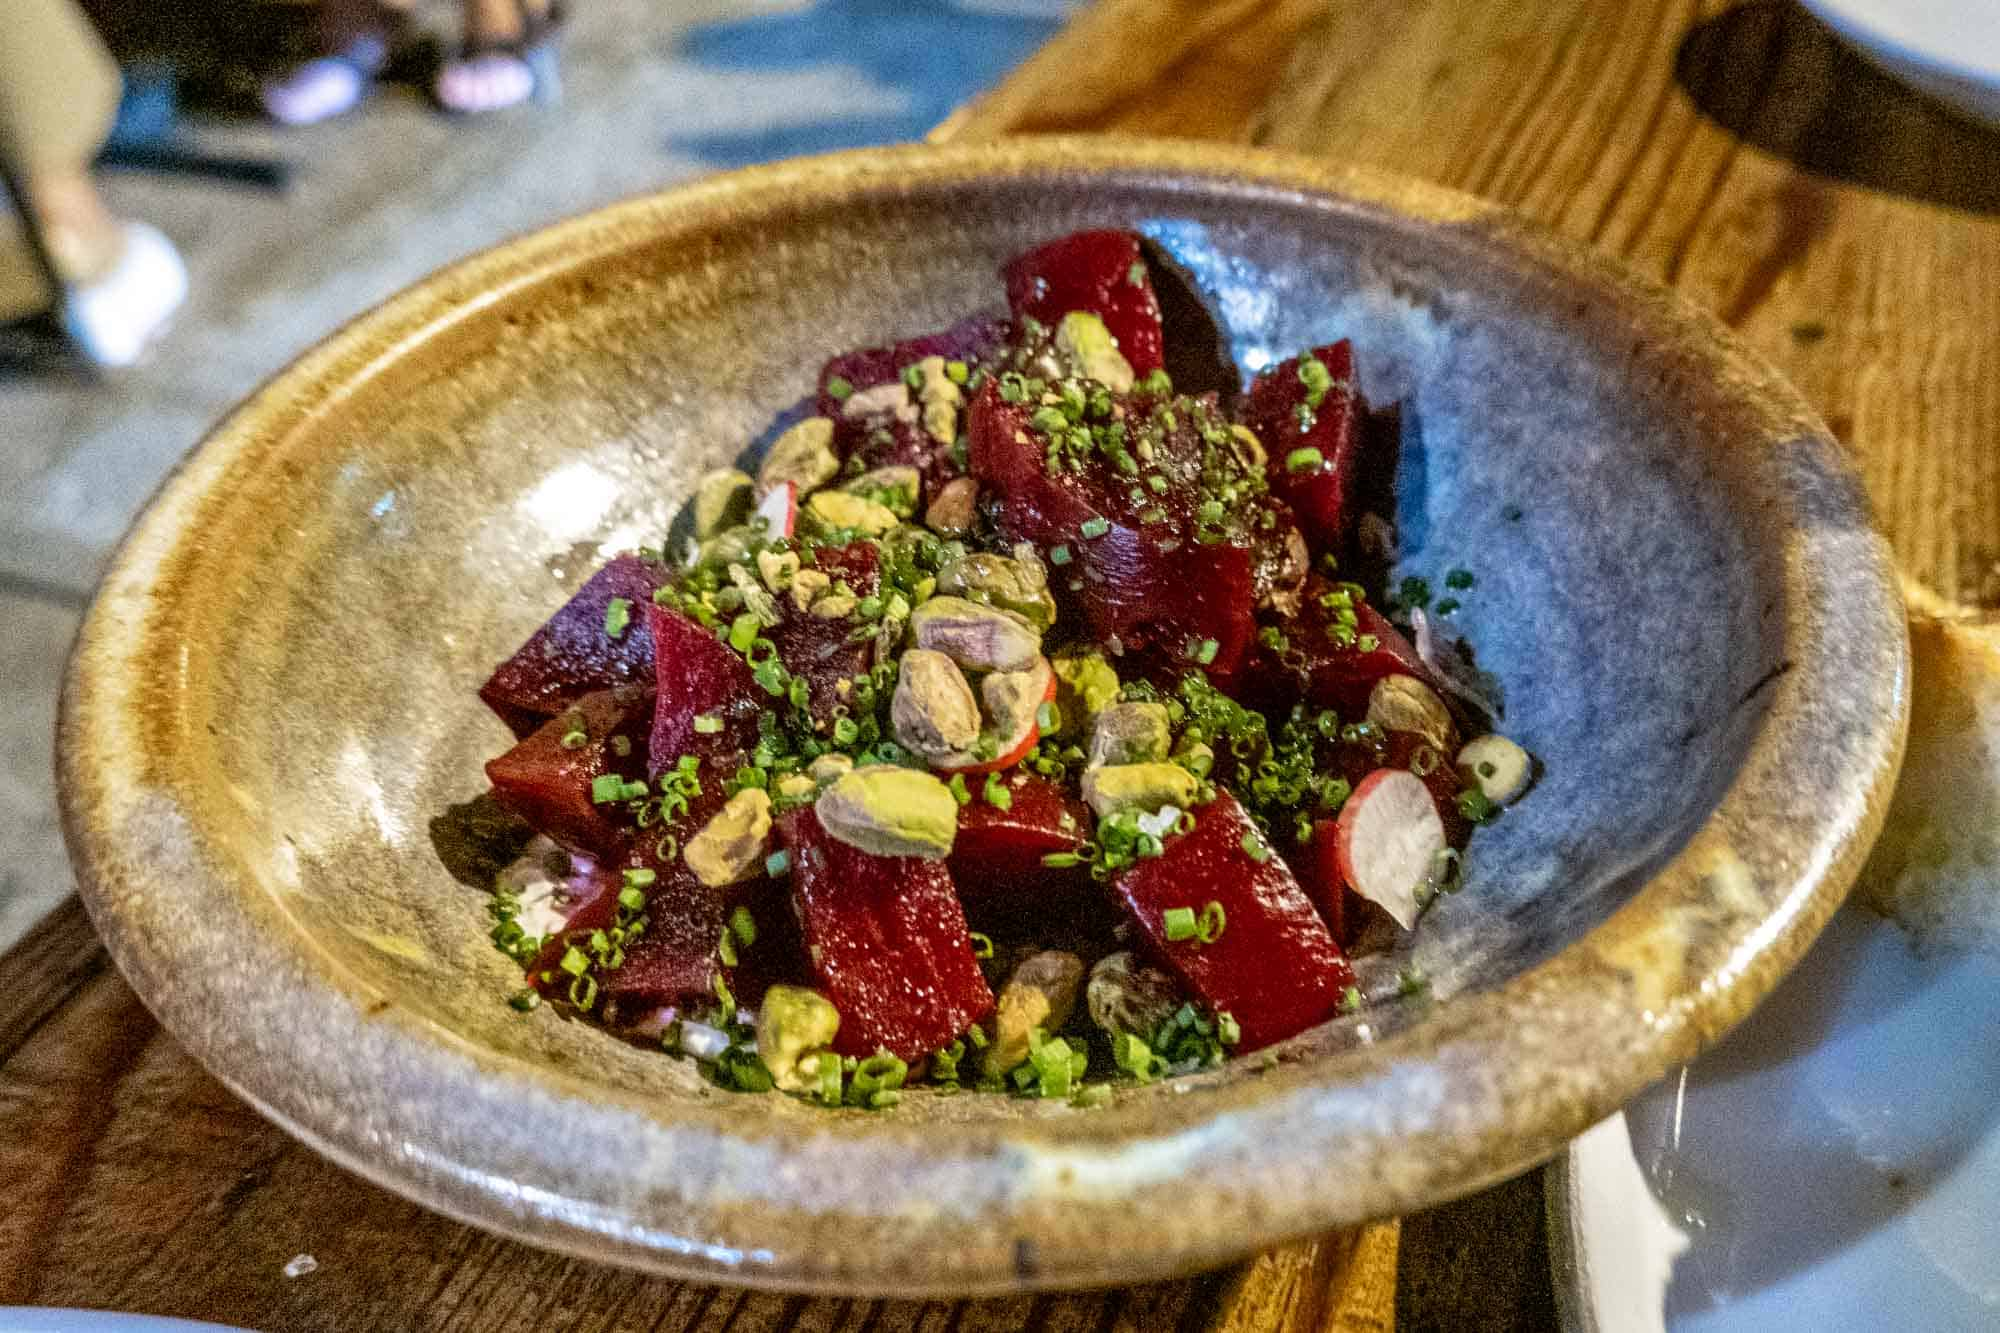 Roasted beets and pistachios in bowl